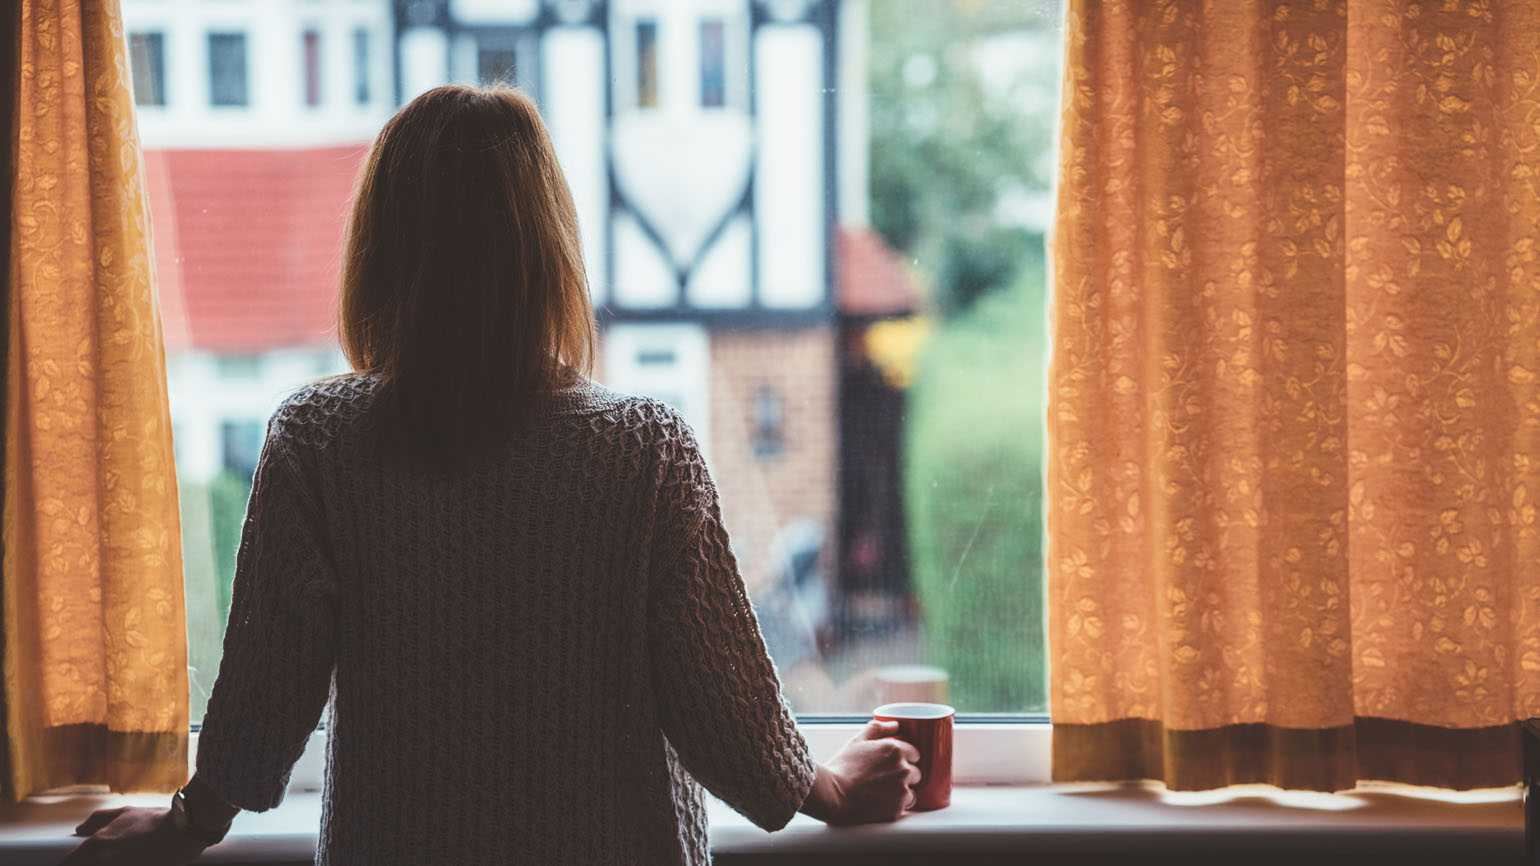 A woman having contemplative thoughts while looking out of her window.